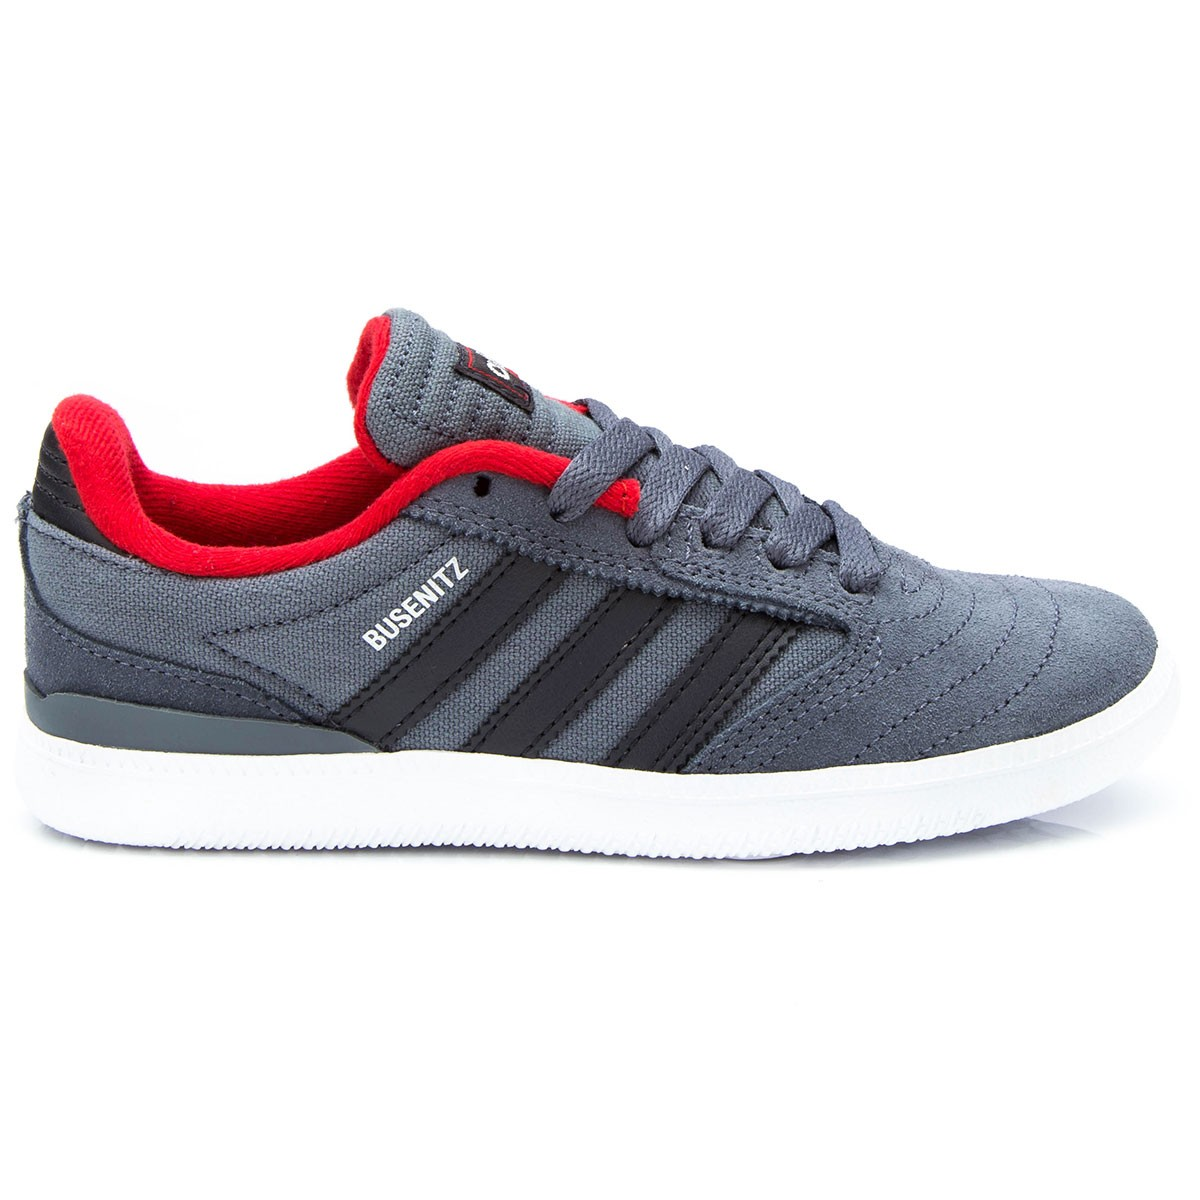 Adidas Busenitz Shoes For Sale